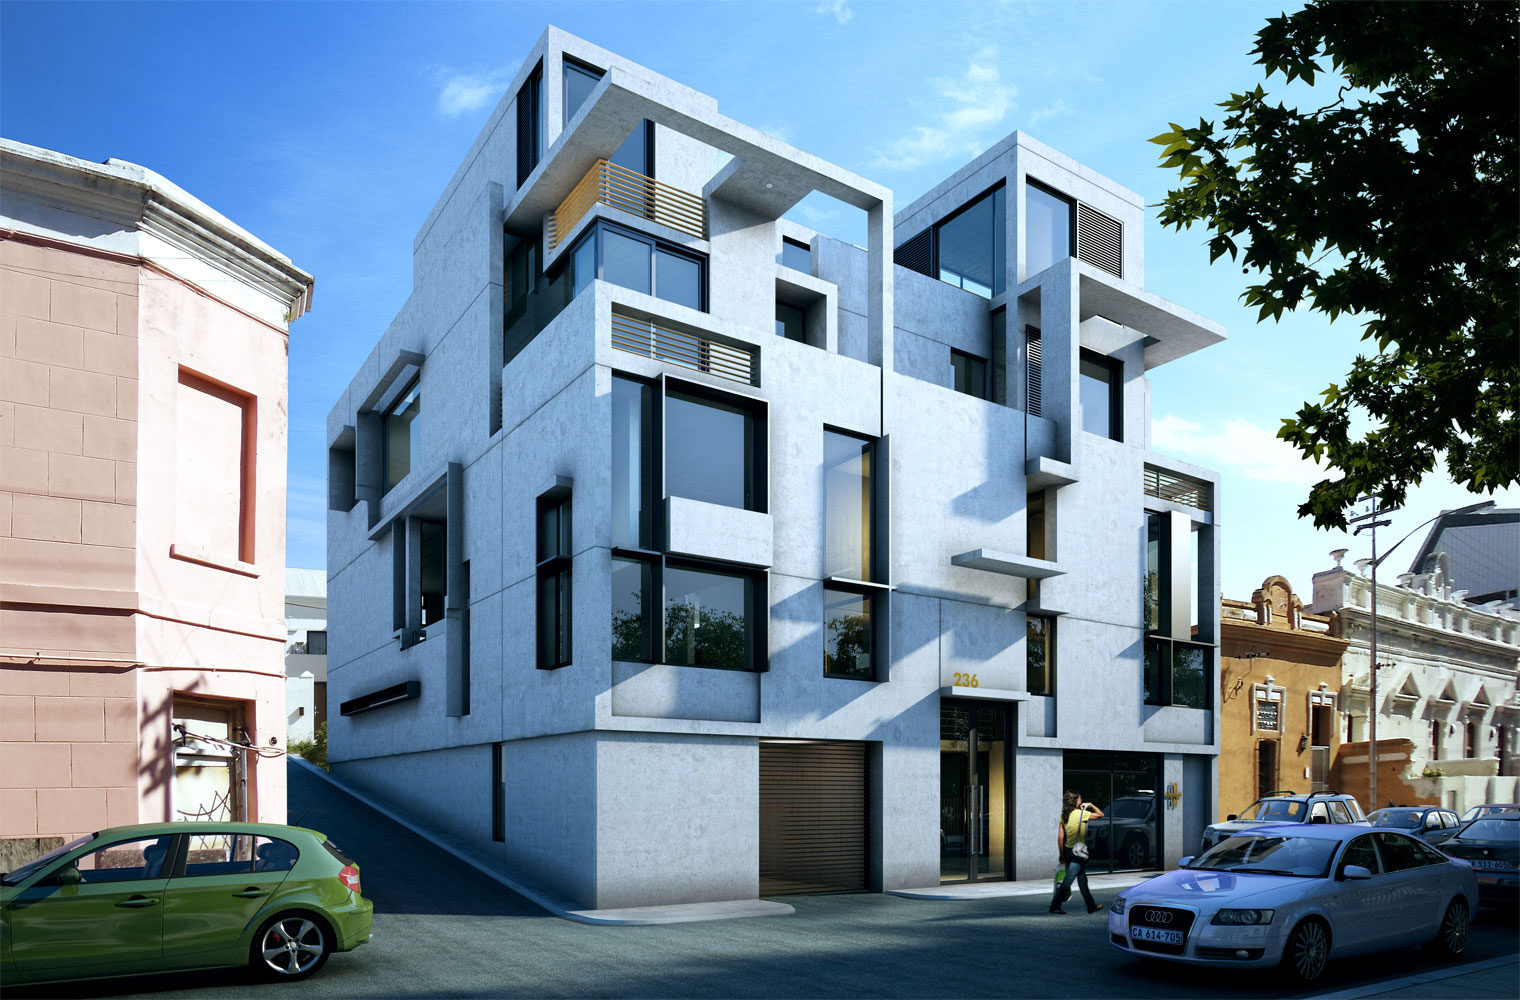 236 buitengragt street-artist impression looking north